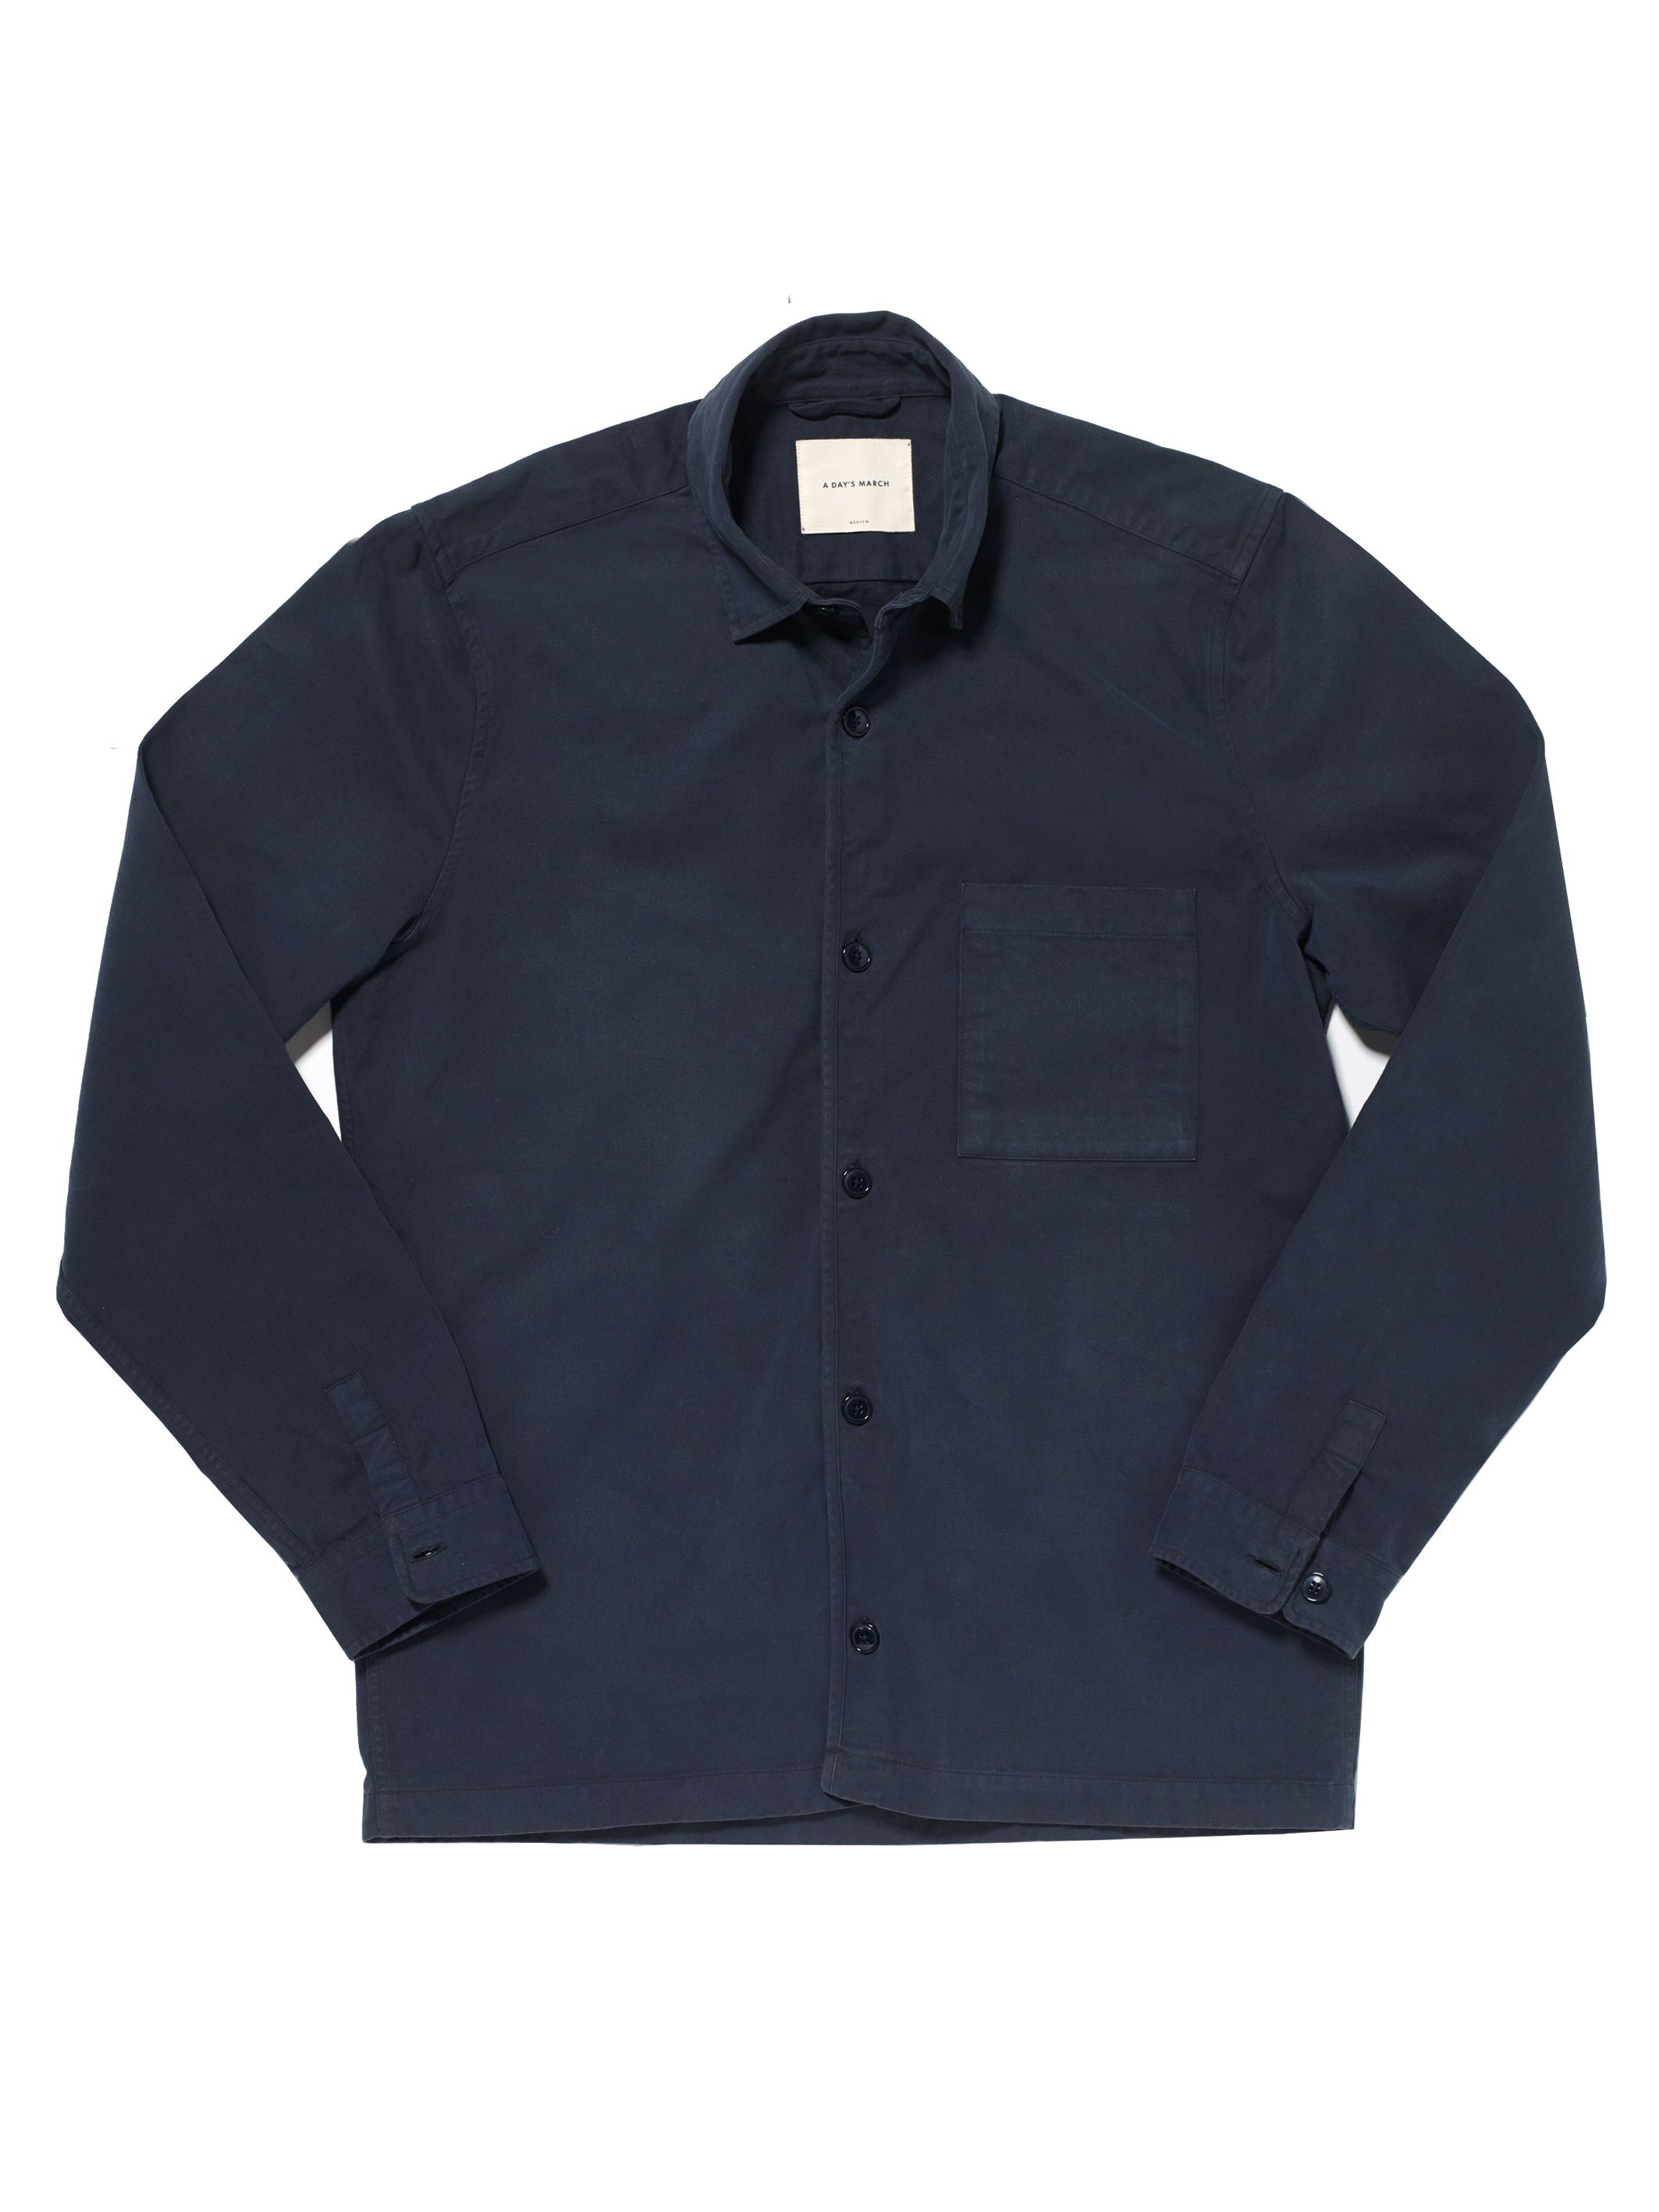 091ad533 OVERSHIRT « A Day's March | Clothing - Jackets | A days march ...